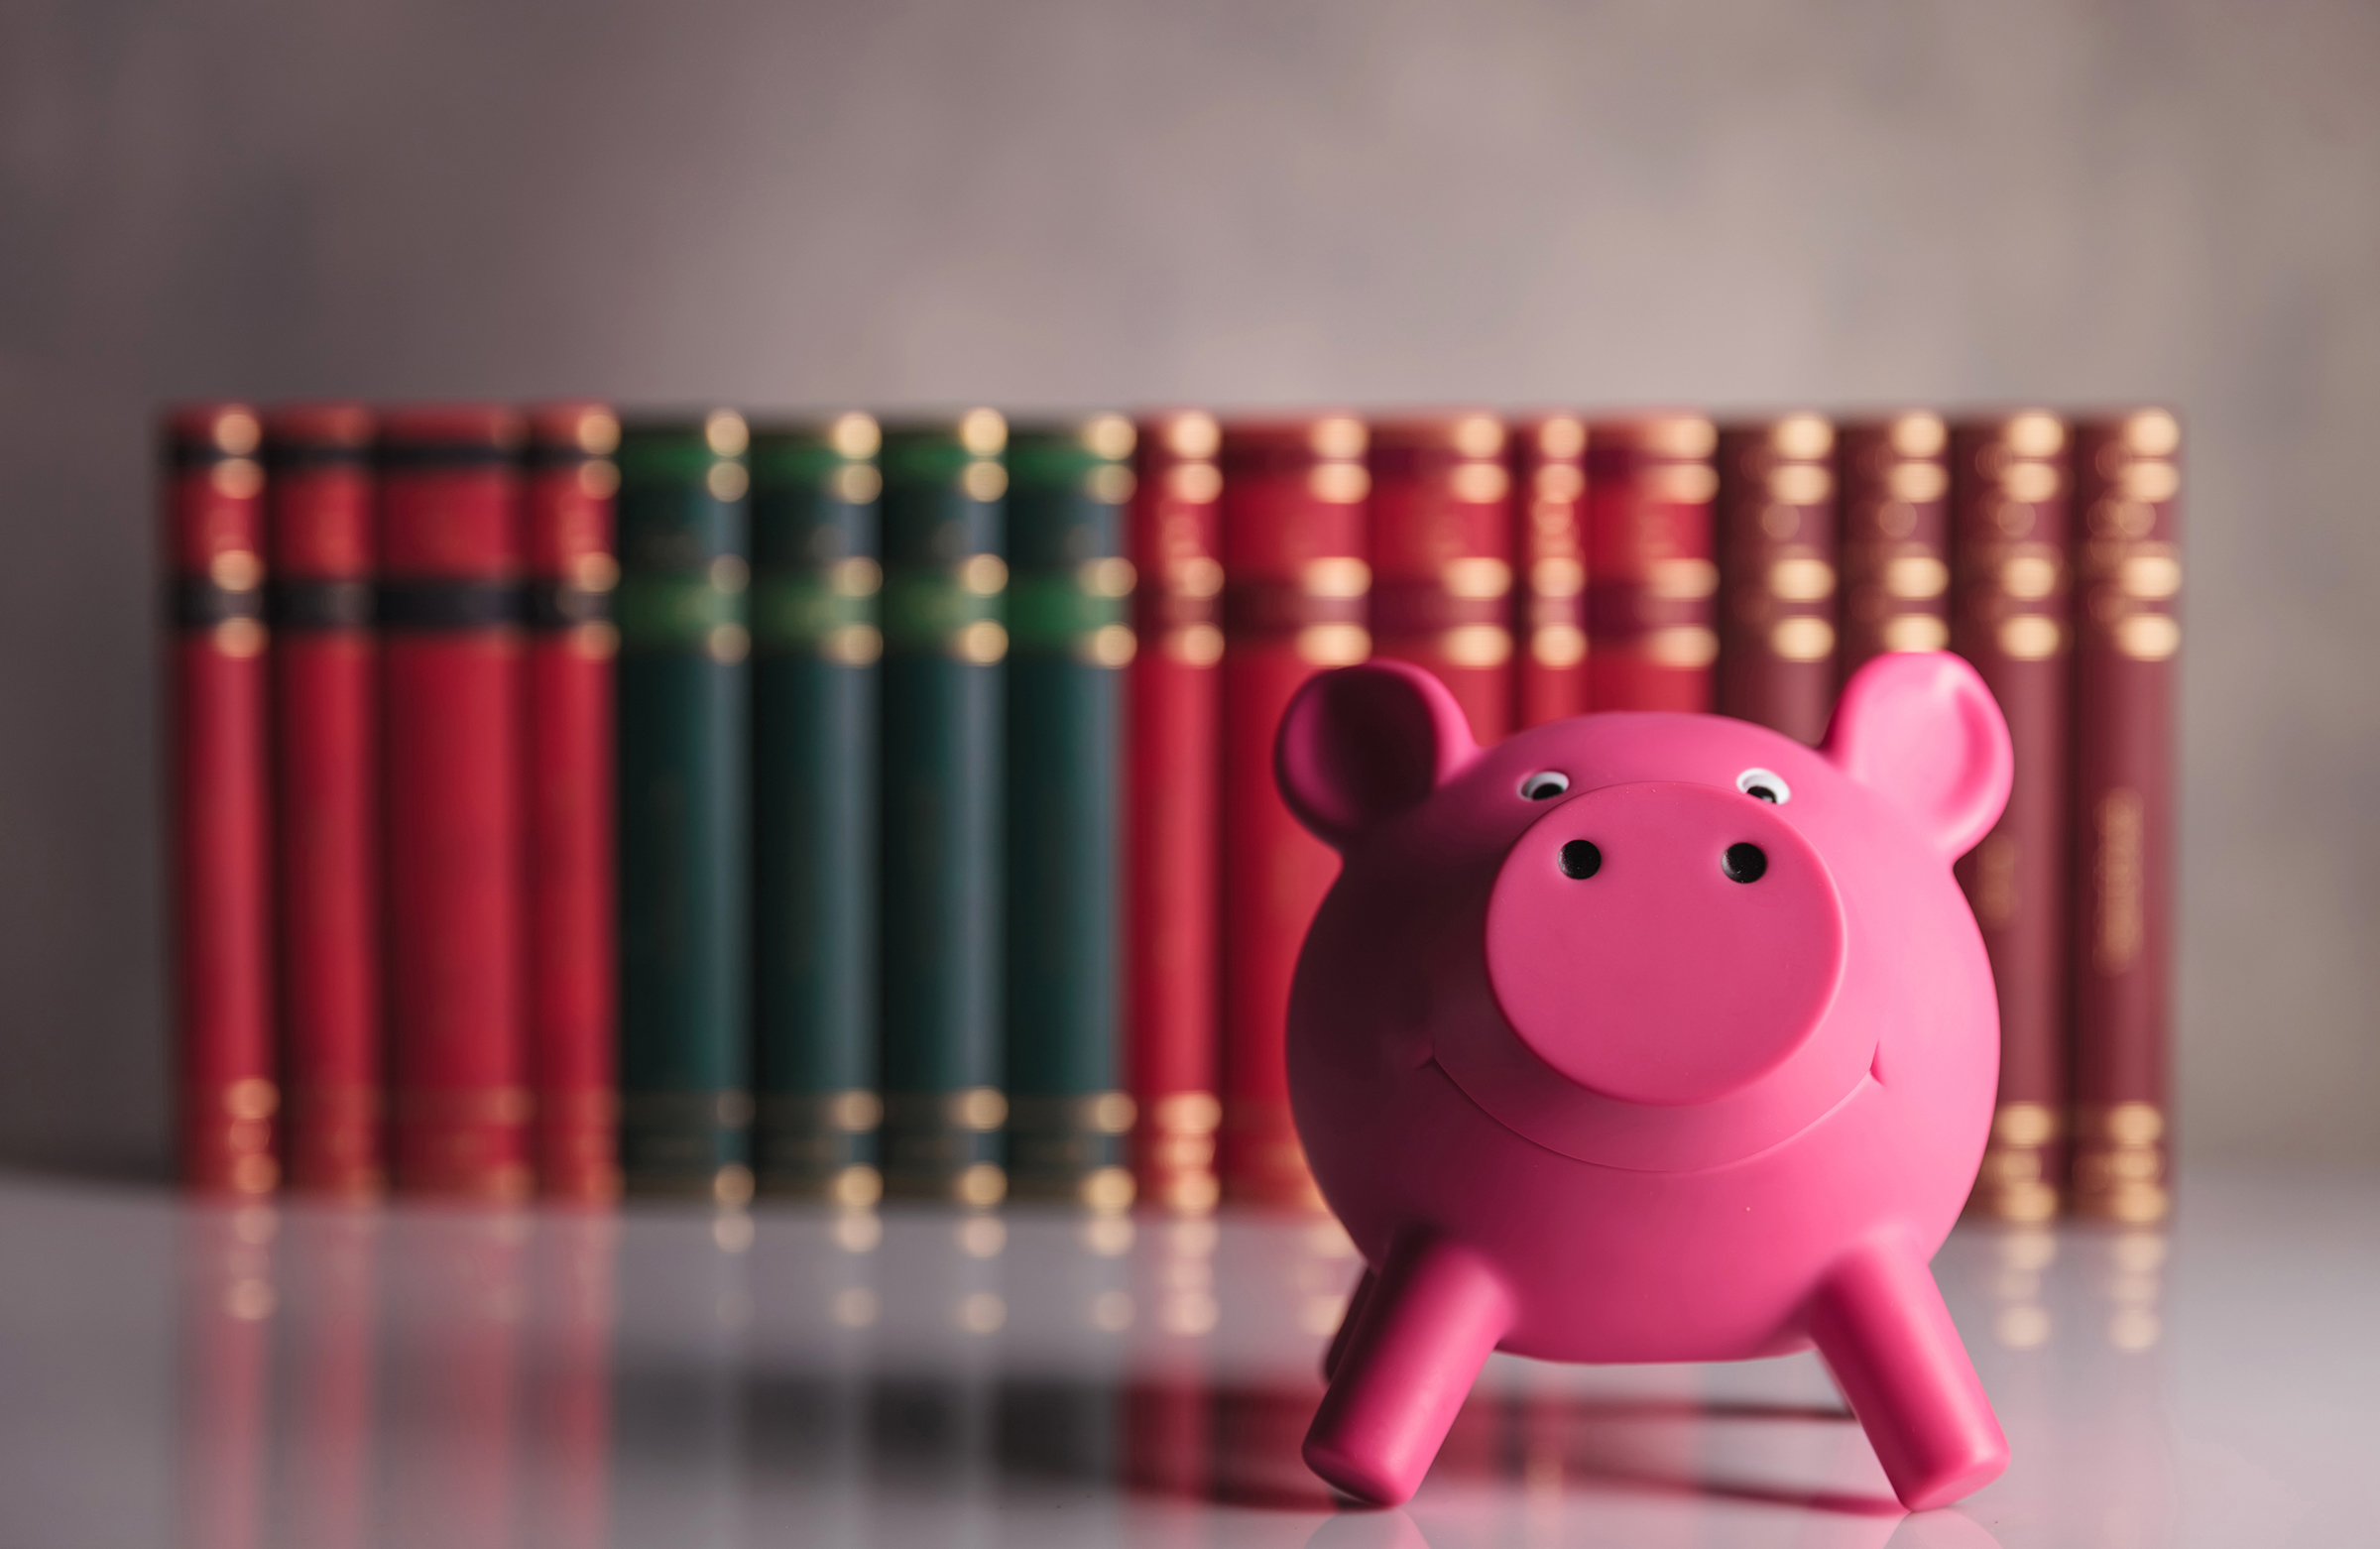 Pink piggy bank 4853 in front of a row of books 55205